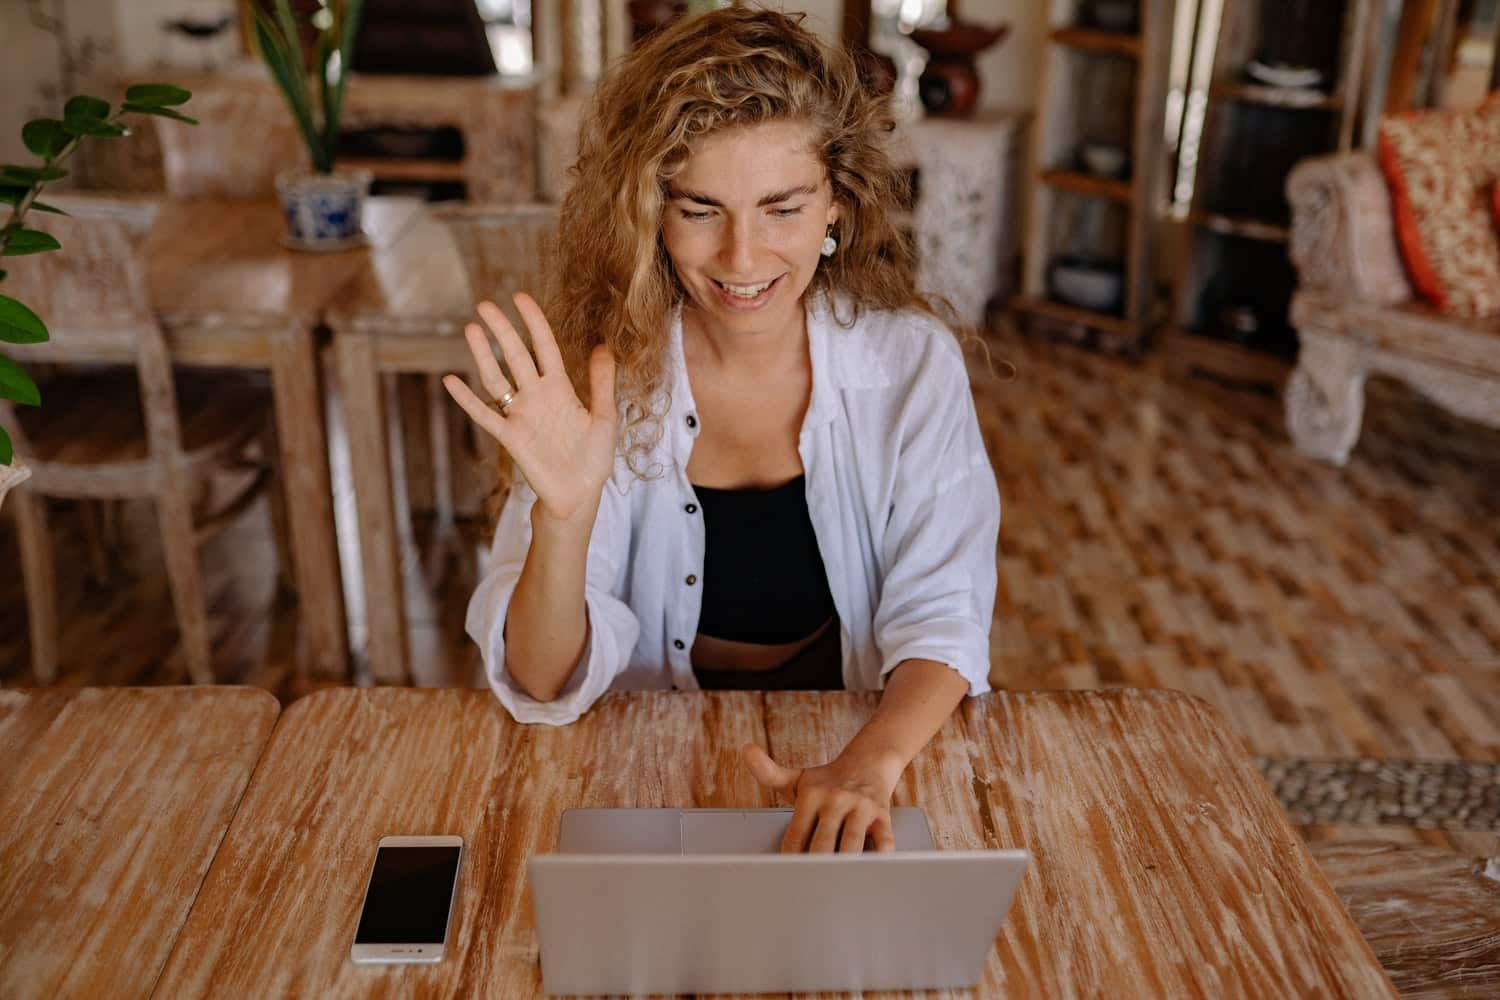 Woman smiles and waves during an online meeting